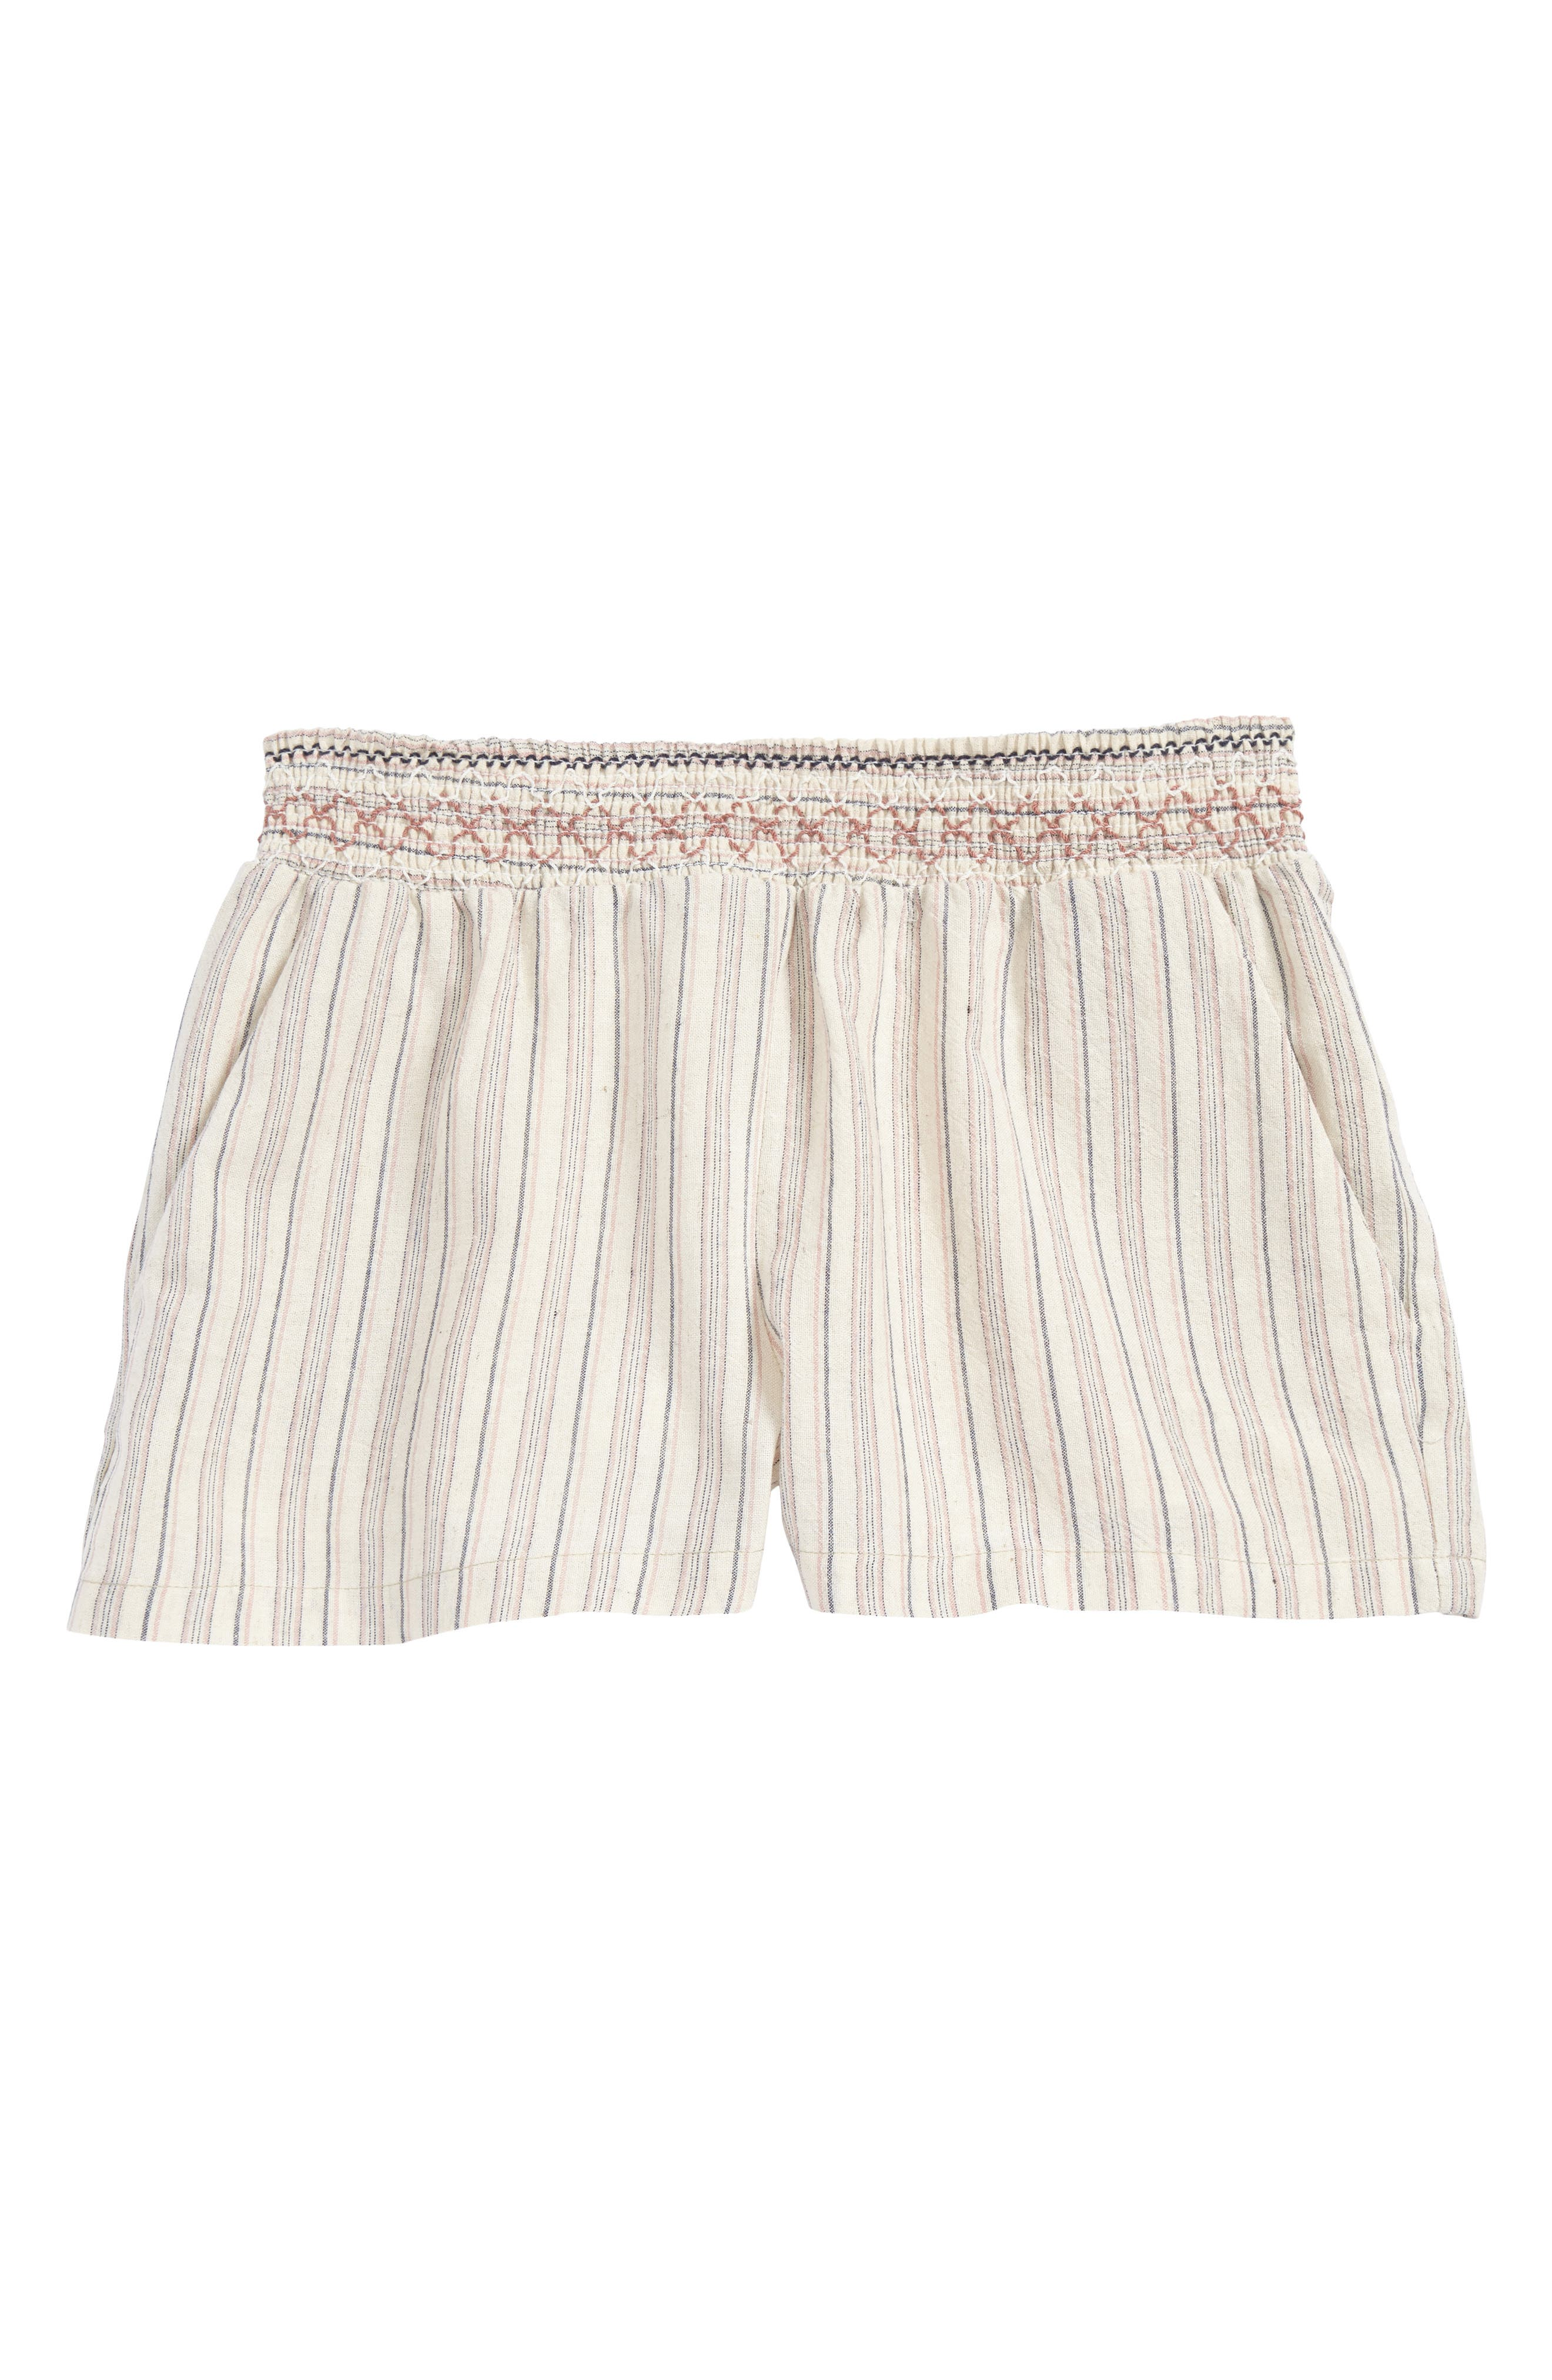 Main Image - For All Seasons Stripe Woven Shorts (Big Girls)